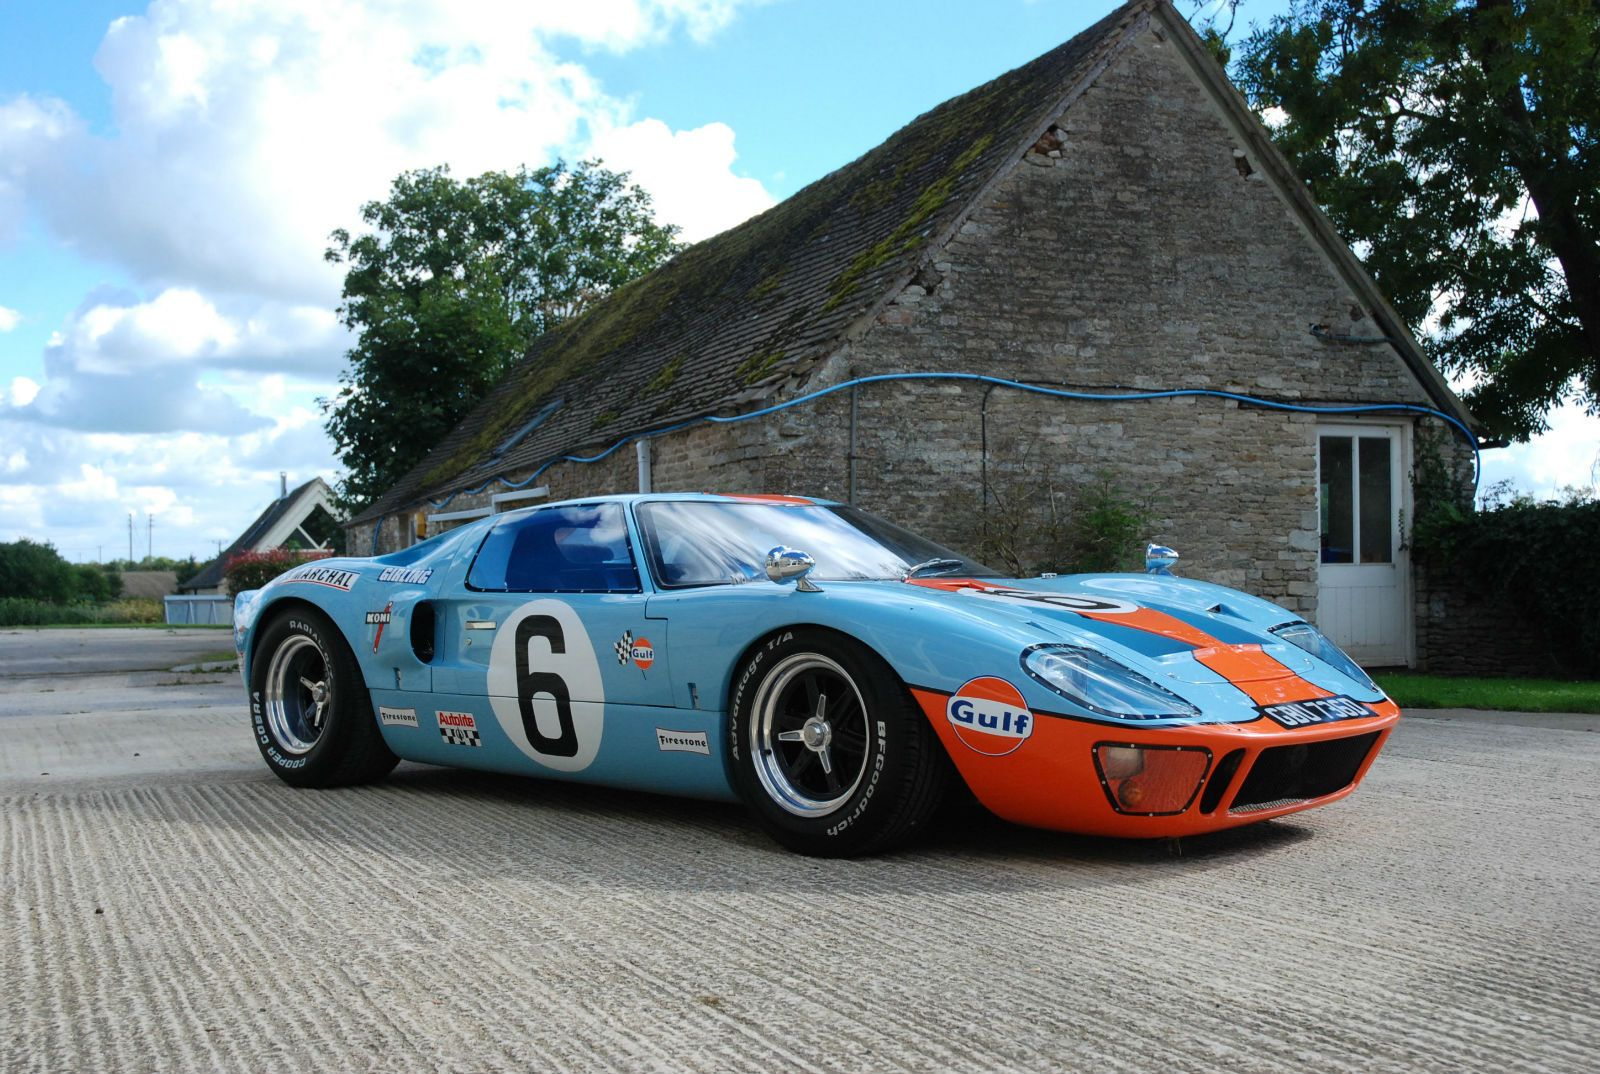 Ford Gt40 Jacky Ickx Gt40 Gulf Colours Sold Ford Gt40 Gt40